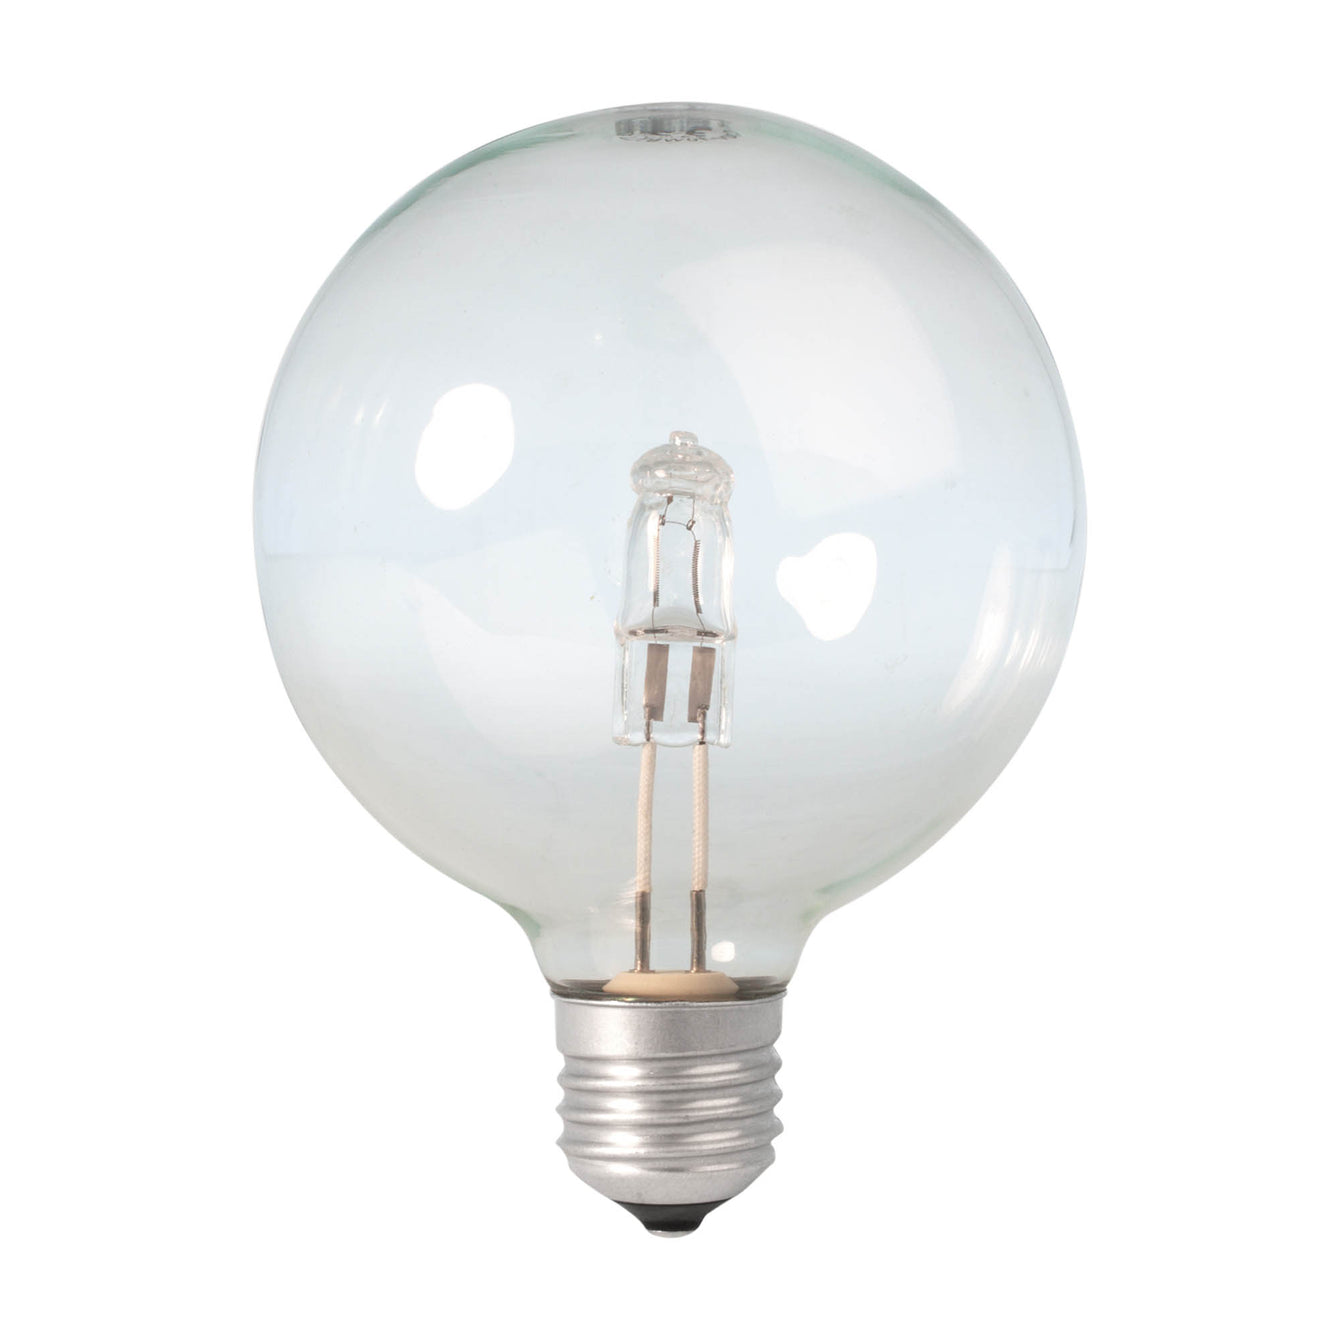 Calex Energy Saving Halogen Globe Lamp Bulb 230V 28W(37W) E27 G80 clear 508276 - Buy It Better Default Title